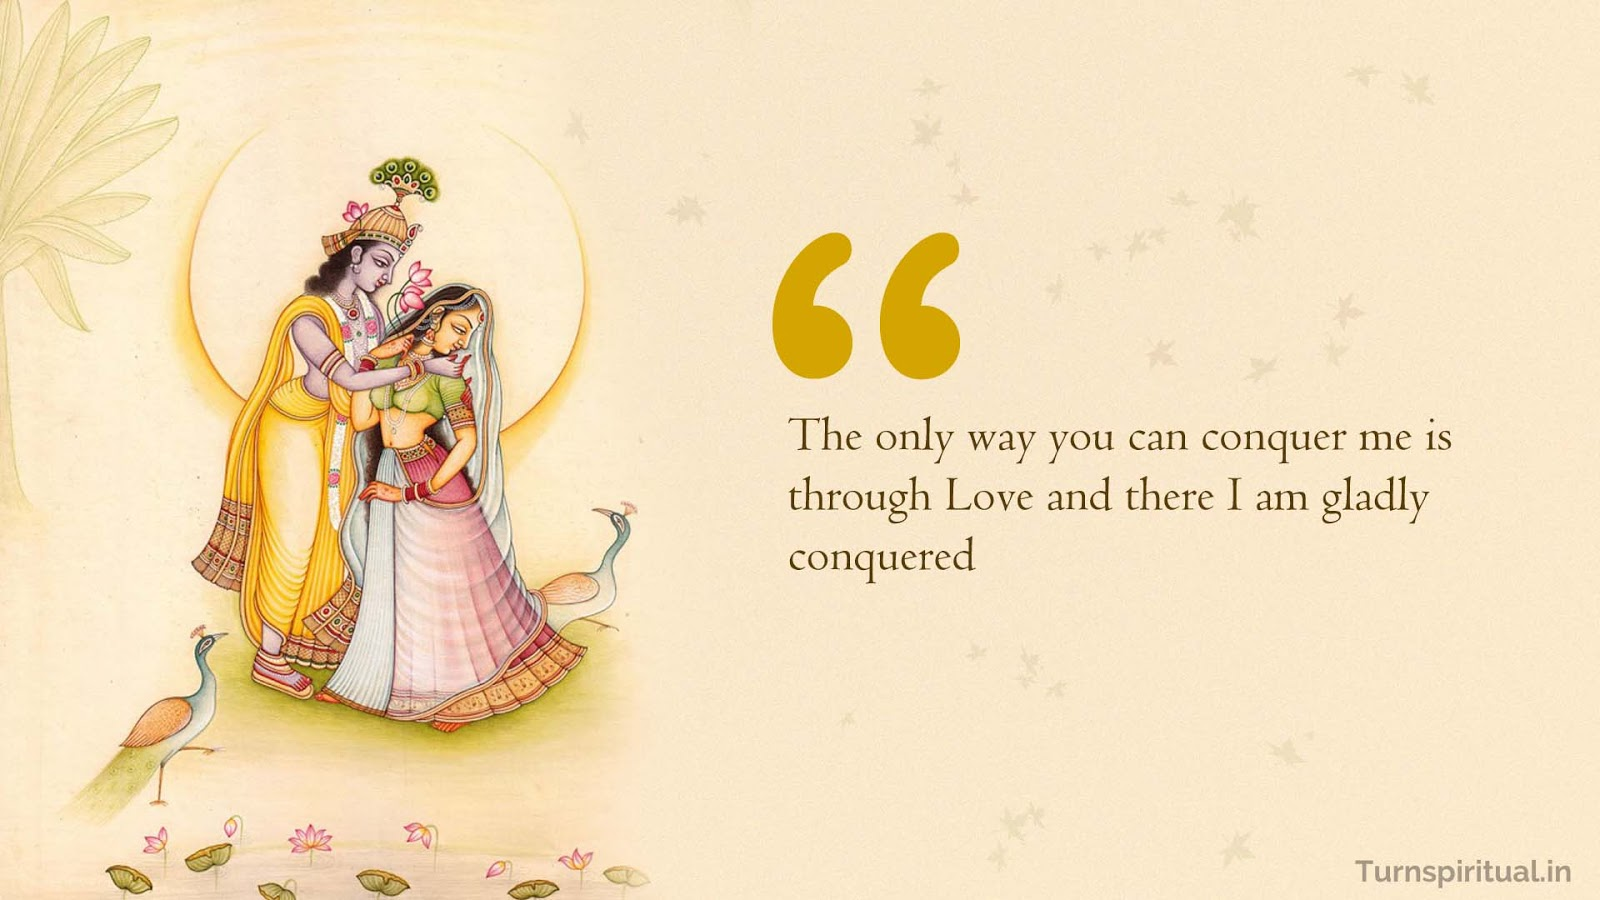 bhagavad gita essay lord krishna quotes on love from bhagavadgita radha krishna hd turnspiritual in location